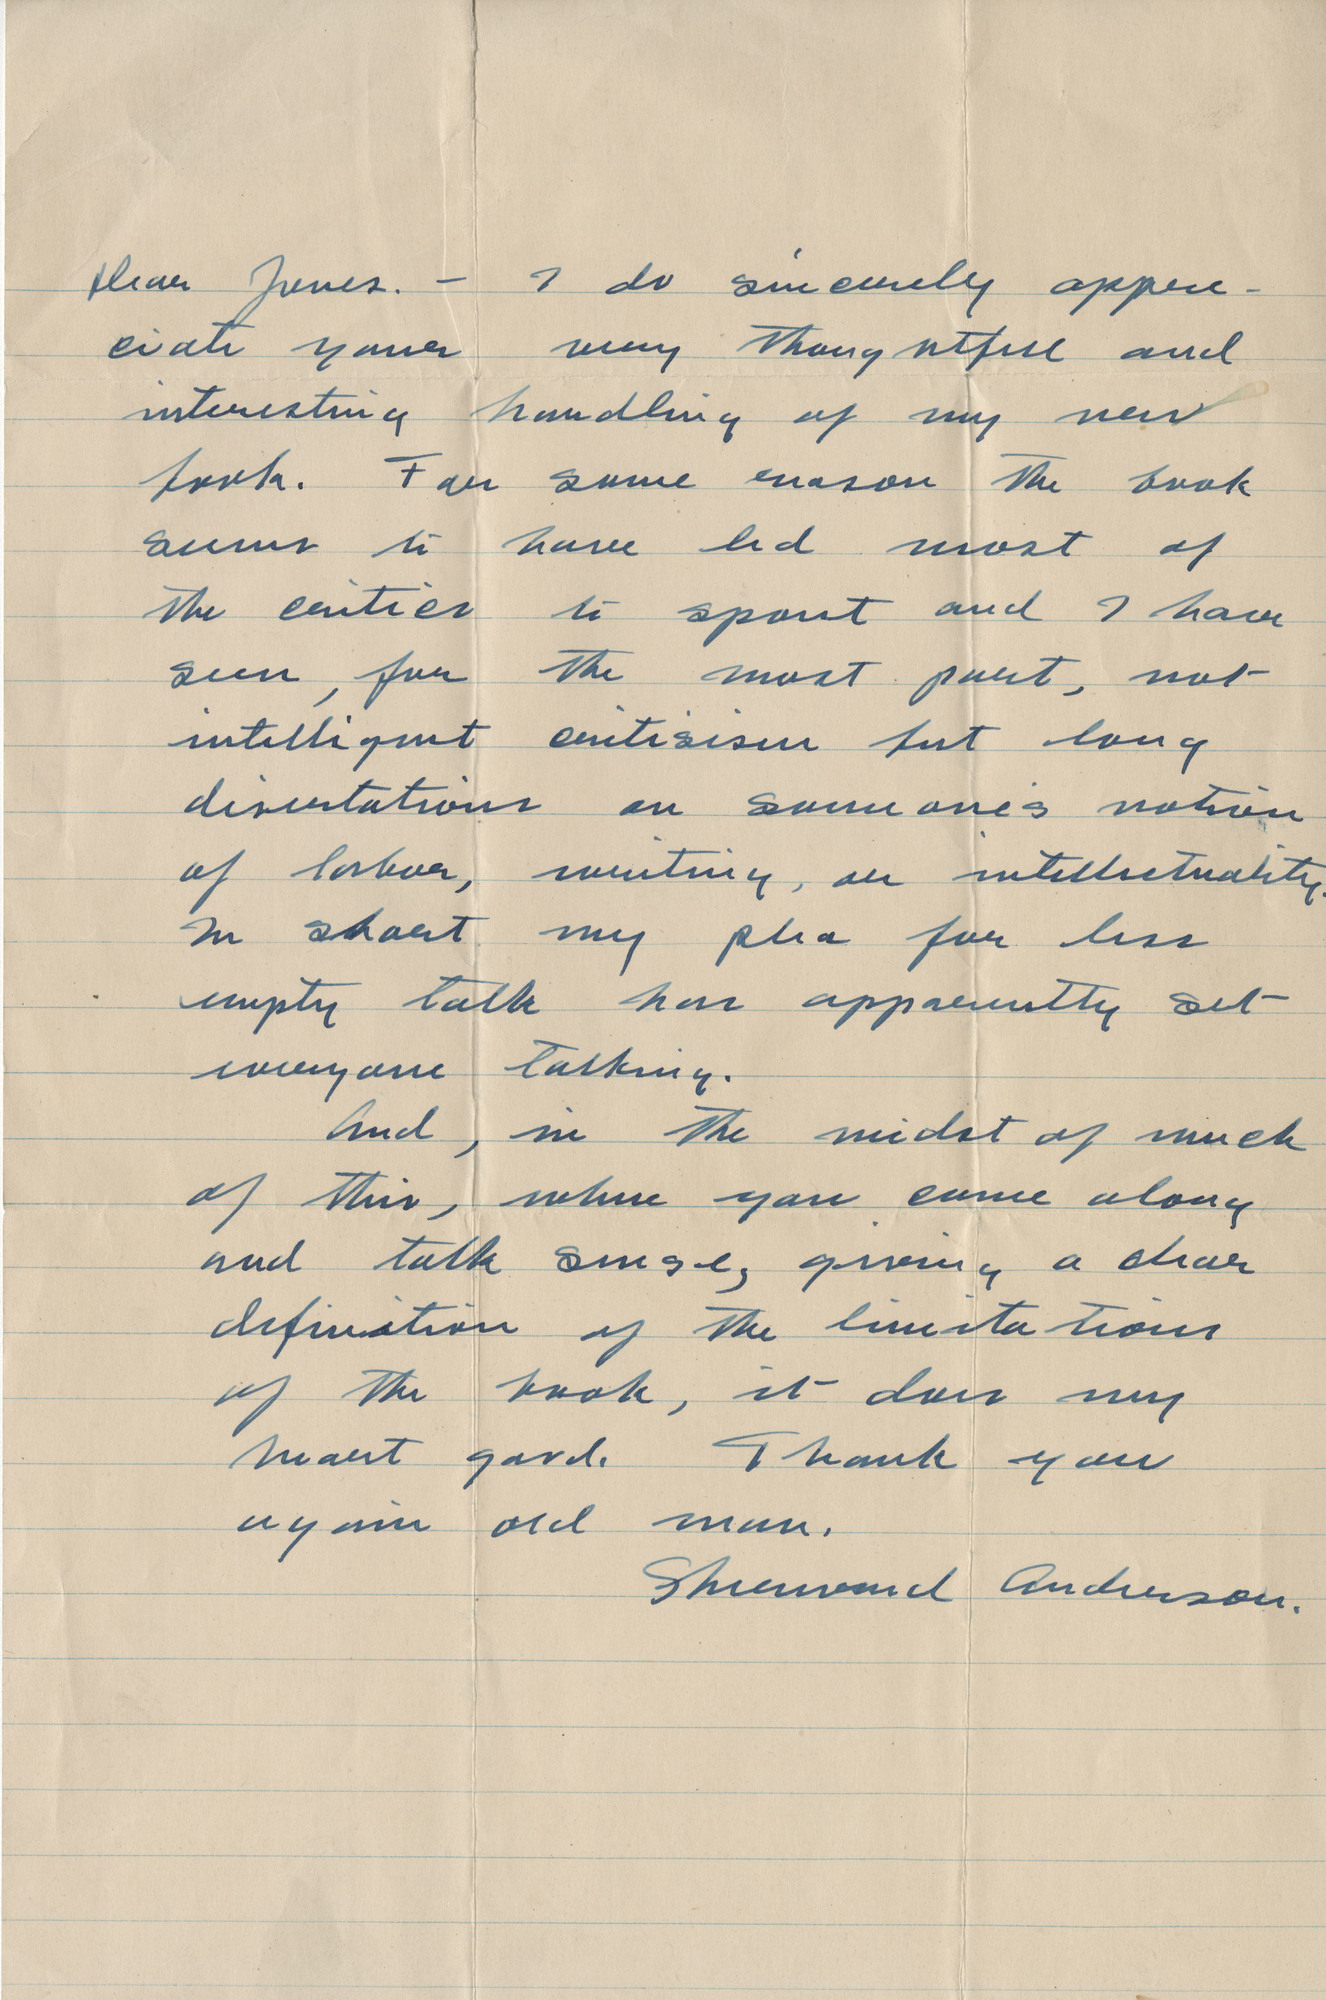 Ms2015-044_AndersonSherwood_Letter_1917.jpg